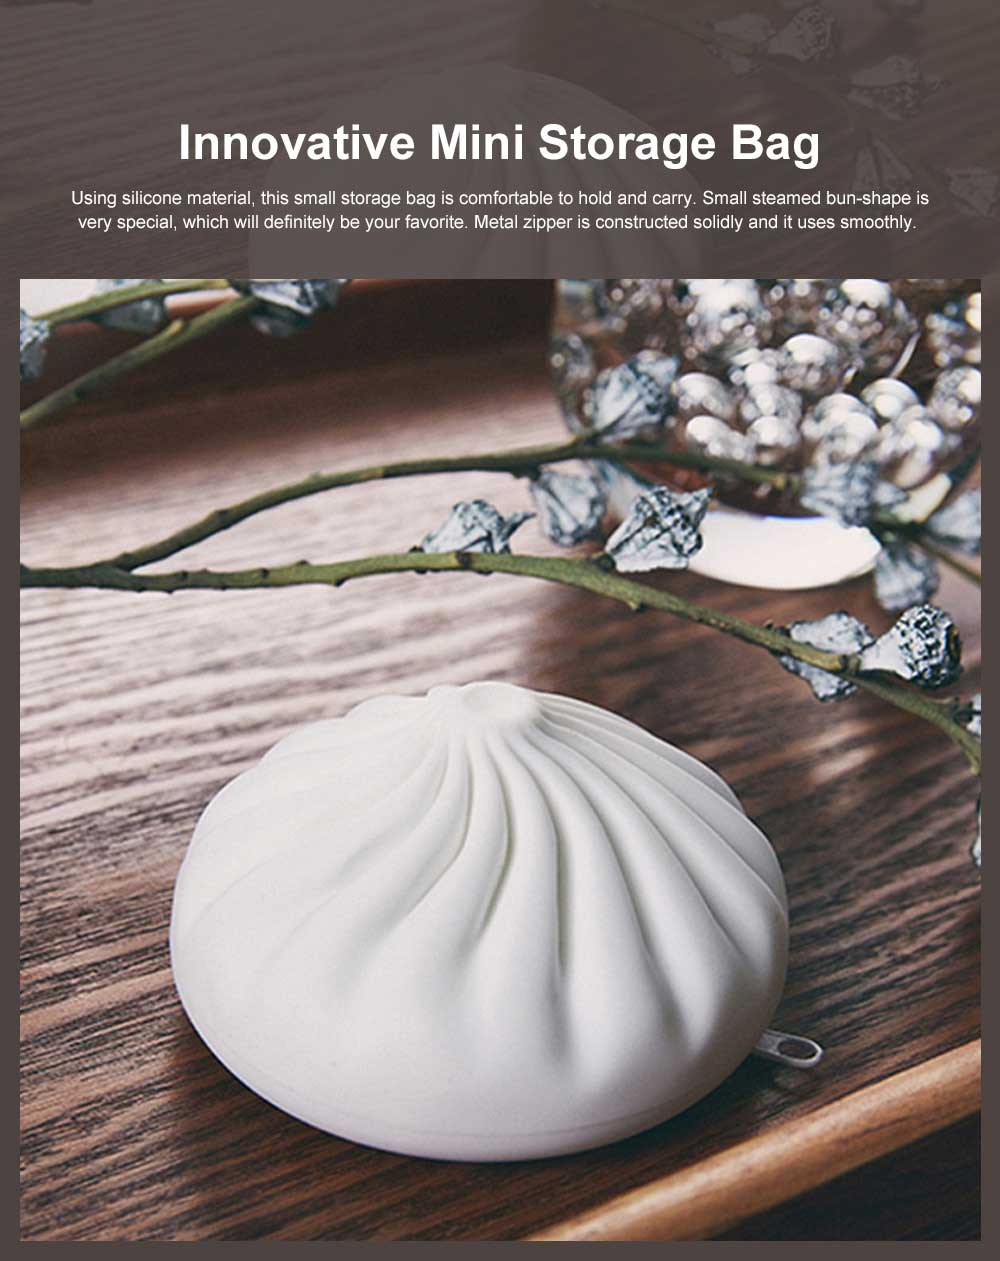 Innovative Mini Storage Bag Silicone Portable Small Steamed bun-Shape Purse Chinese Style Small Gift 0